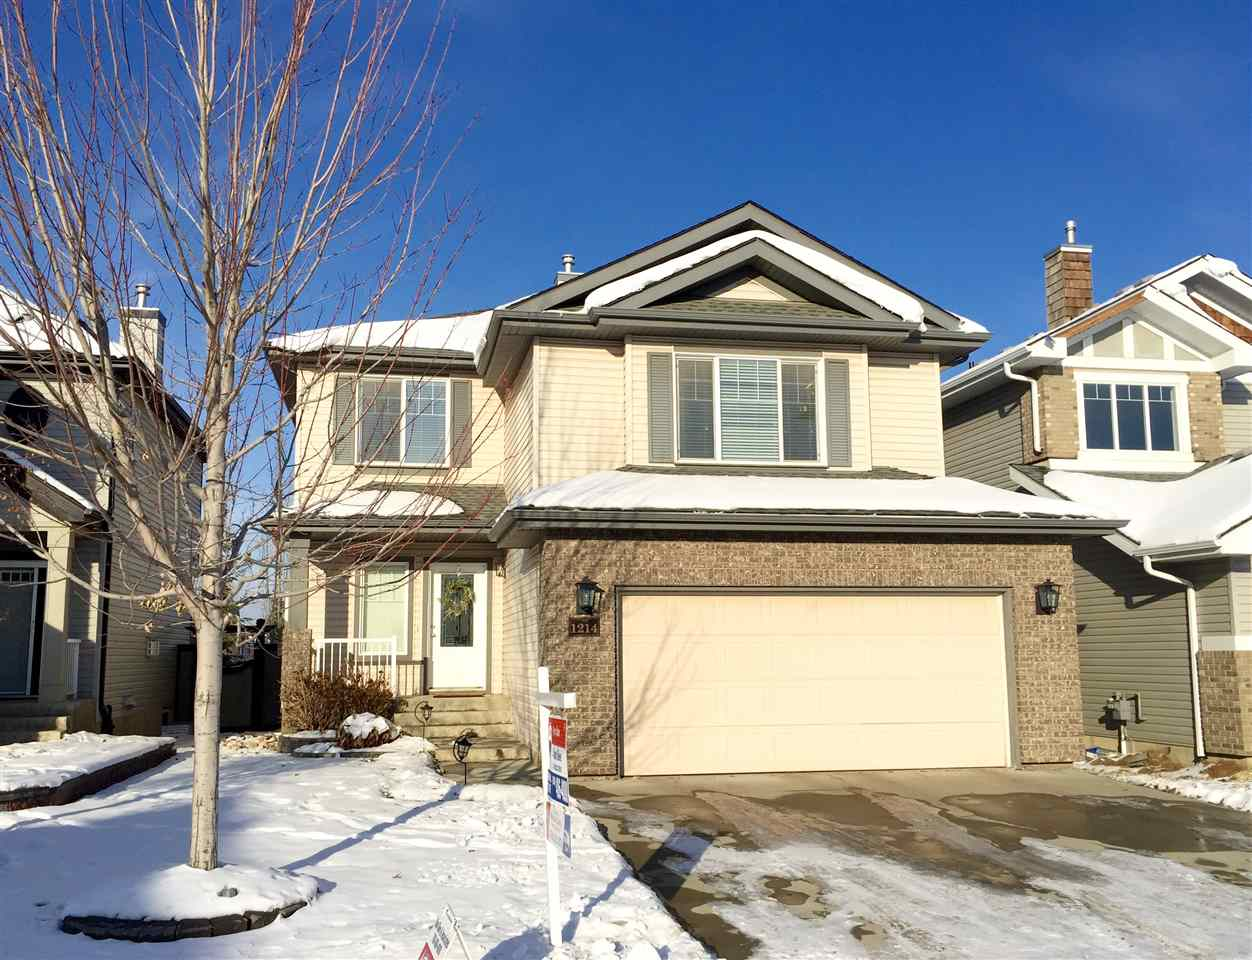 Main Photo: 1214 MCKINNEY Court in Edmonton: Zone 14 House for sale : MLS® # E4088308